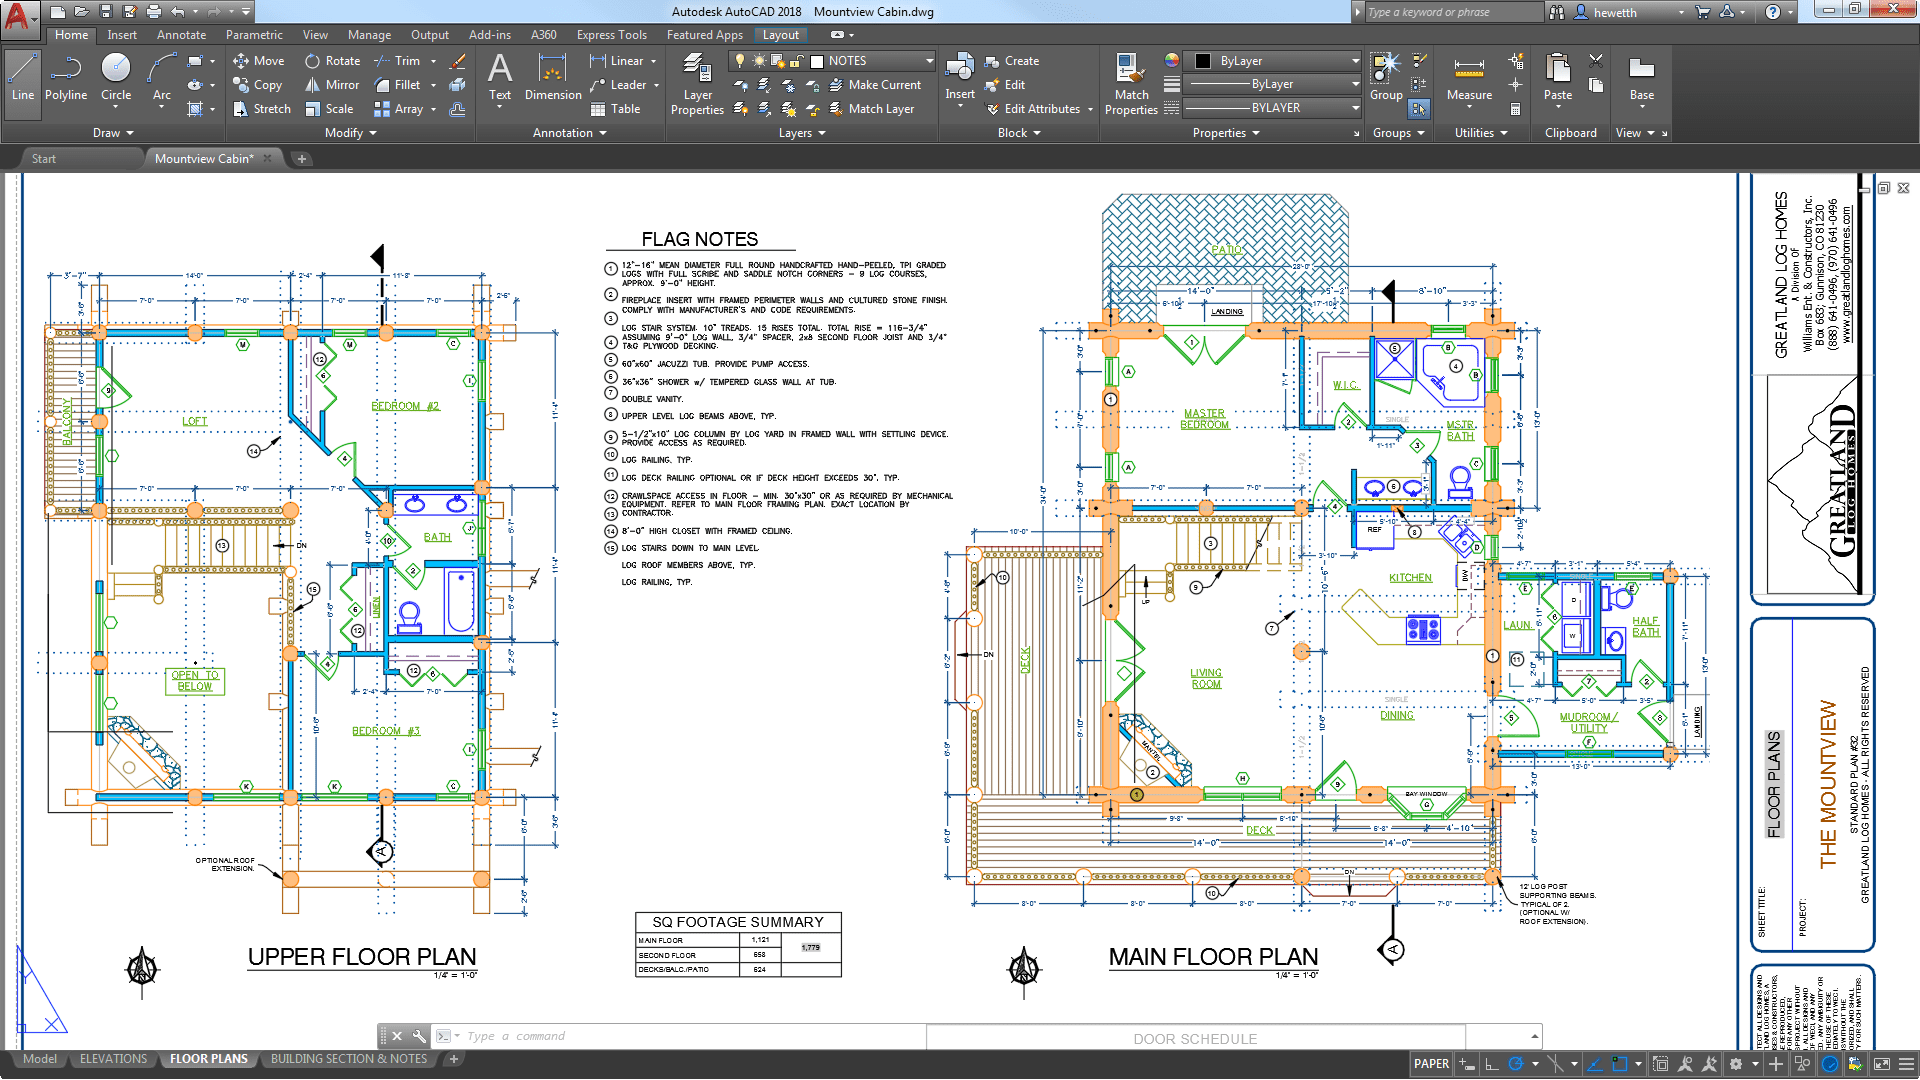 Drawing done in AutoCad